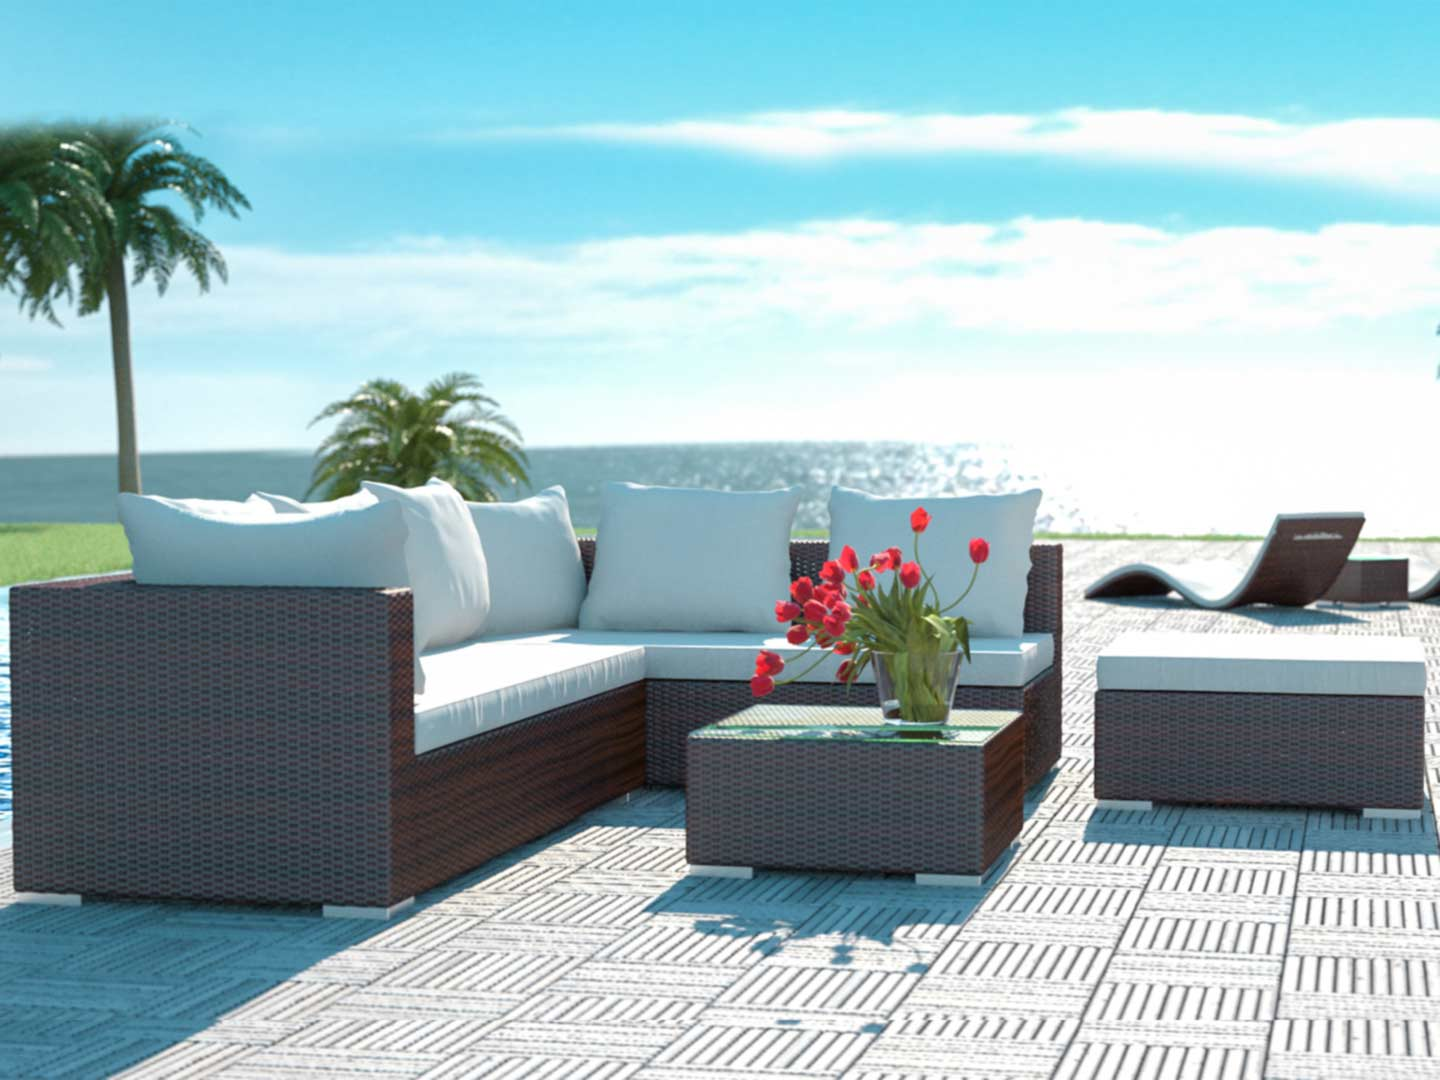 artelia rattan terrassensitzgruppe f r garten terrasse. Black Bedroom Furniture Sets. Home Design Ideas